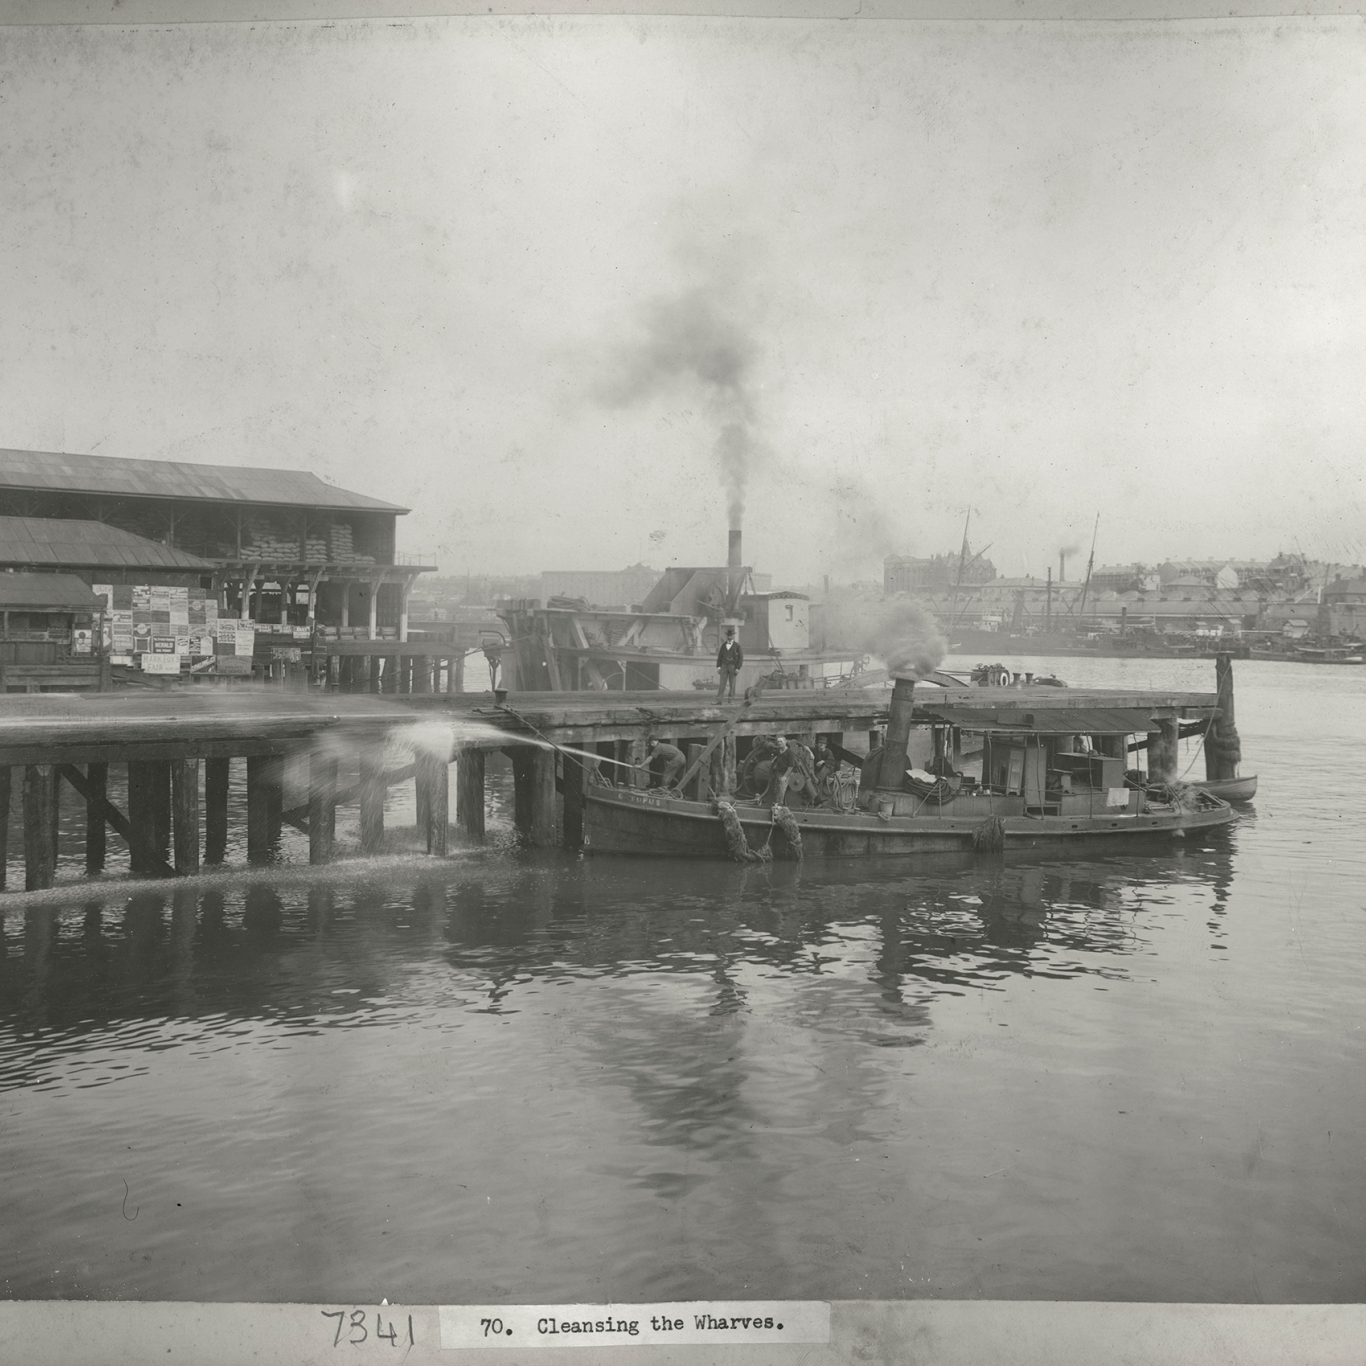 Black and white photograph looking across water to wharves with smoke in distance.